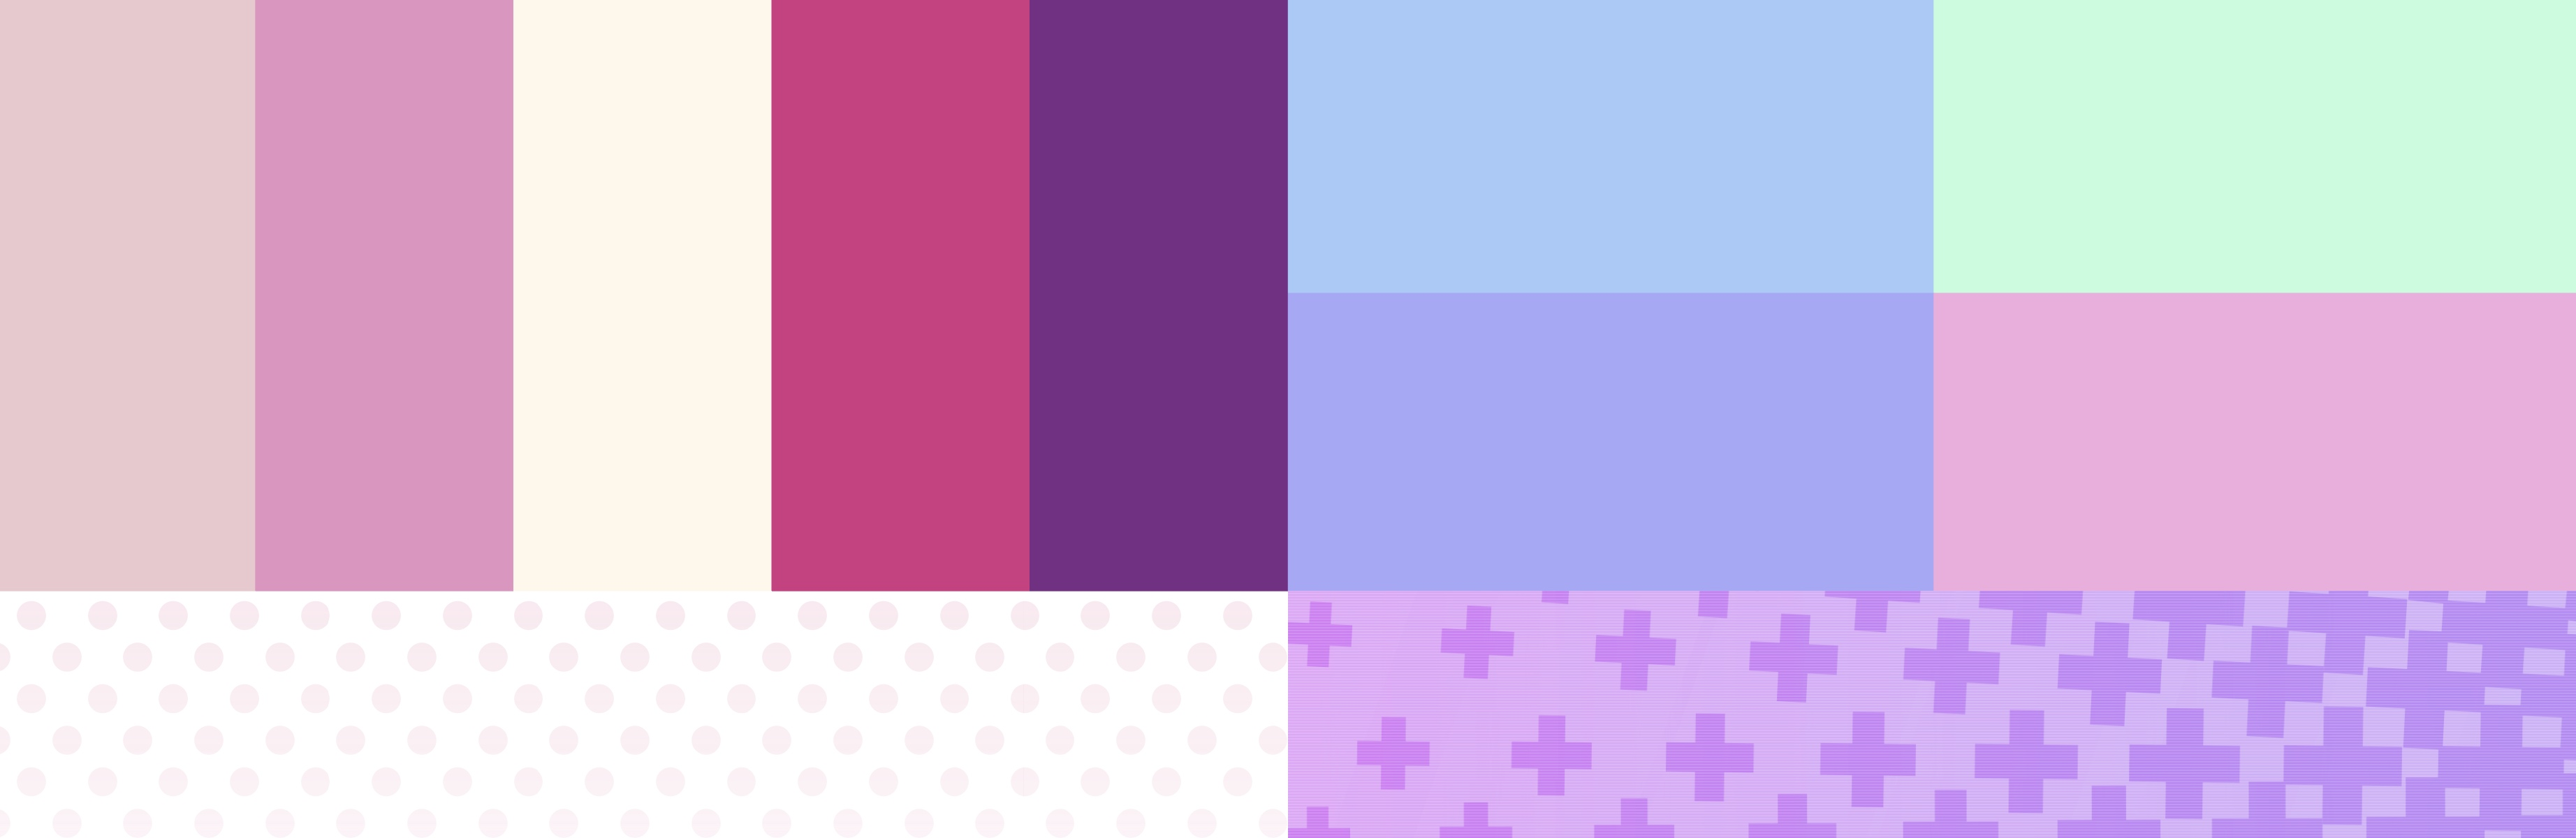 A collage with pastel colored squares and patterns